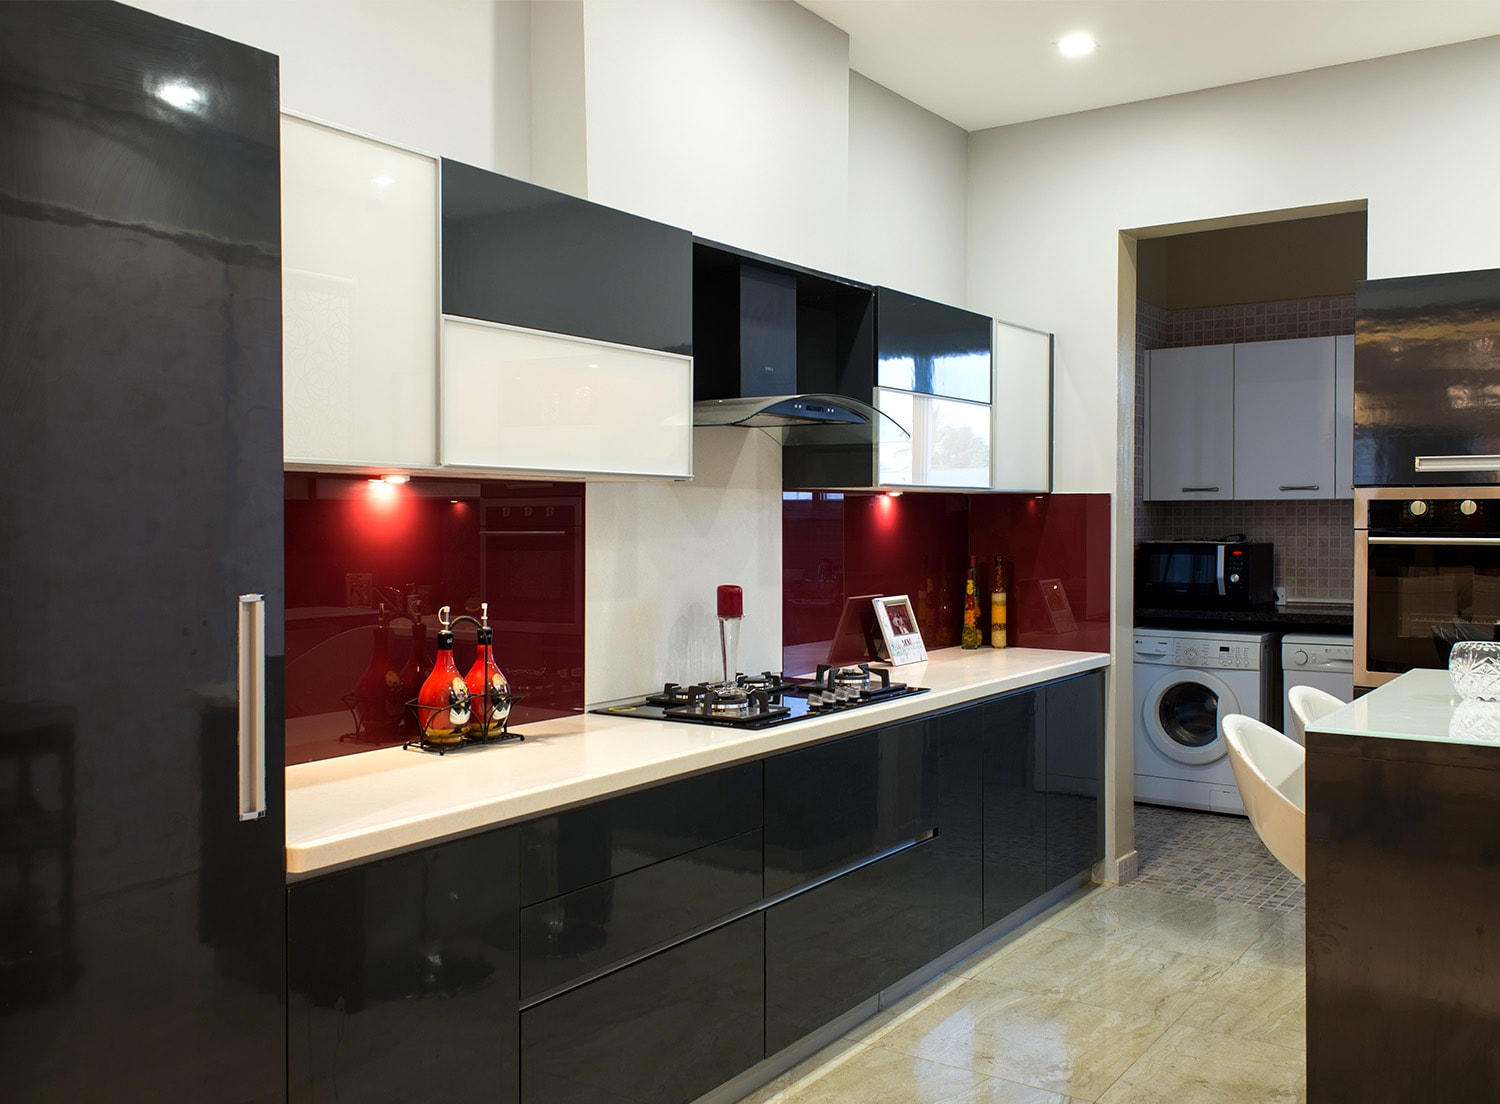 Home Interiors By HomeLane Modular Kitchens Wardrobes Storage Units